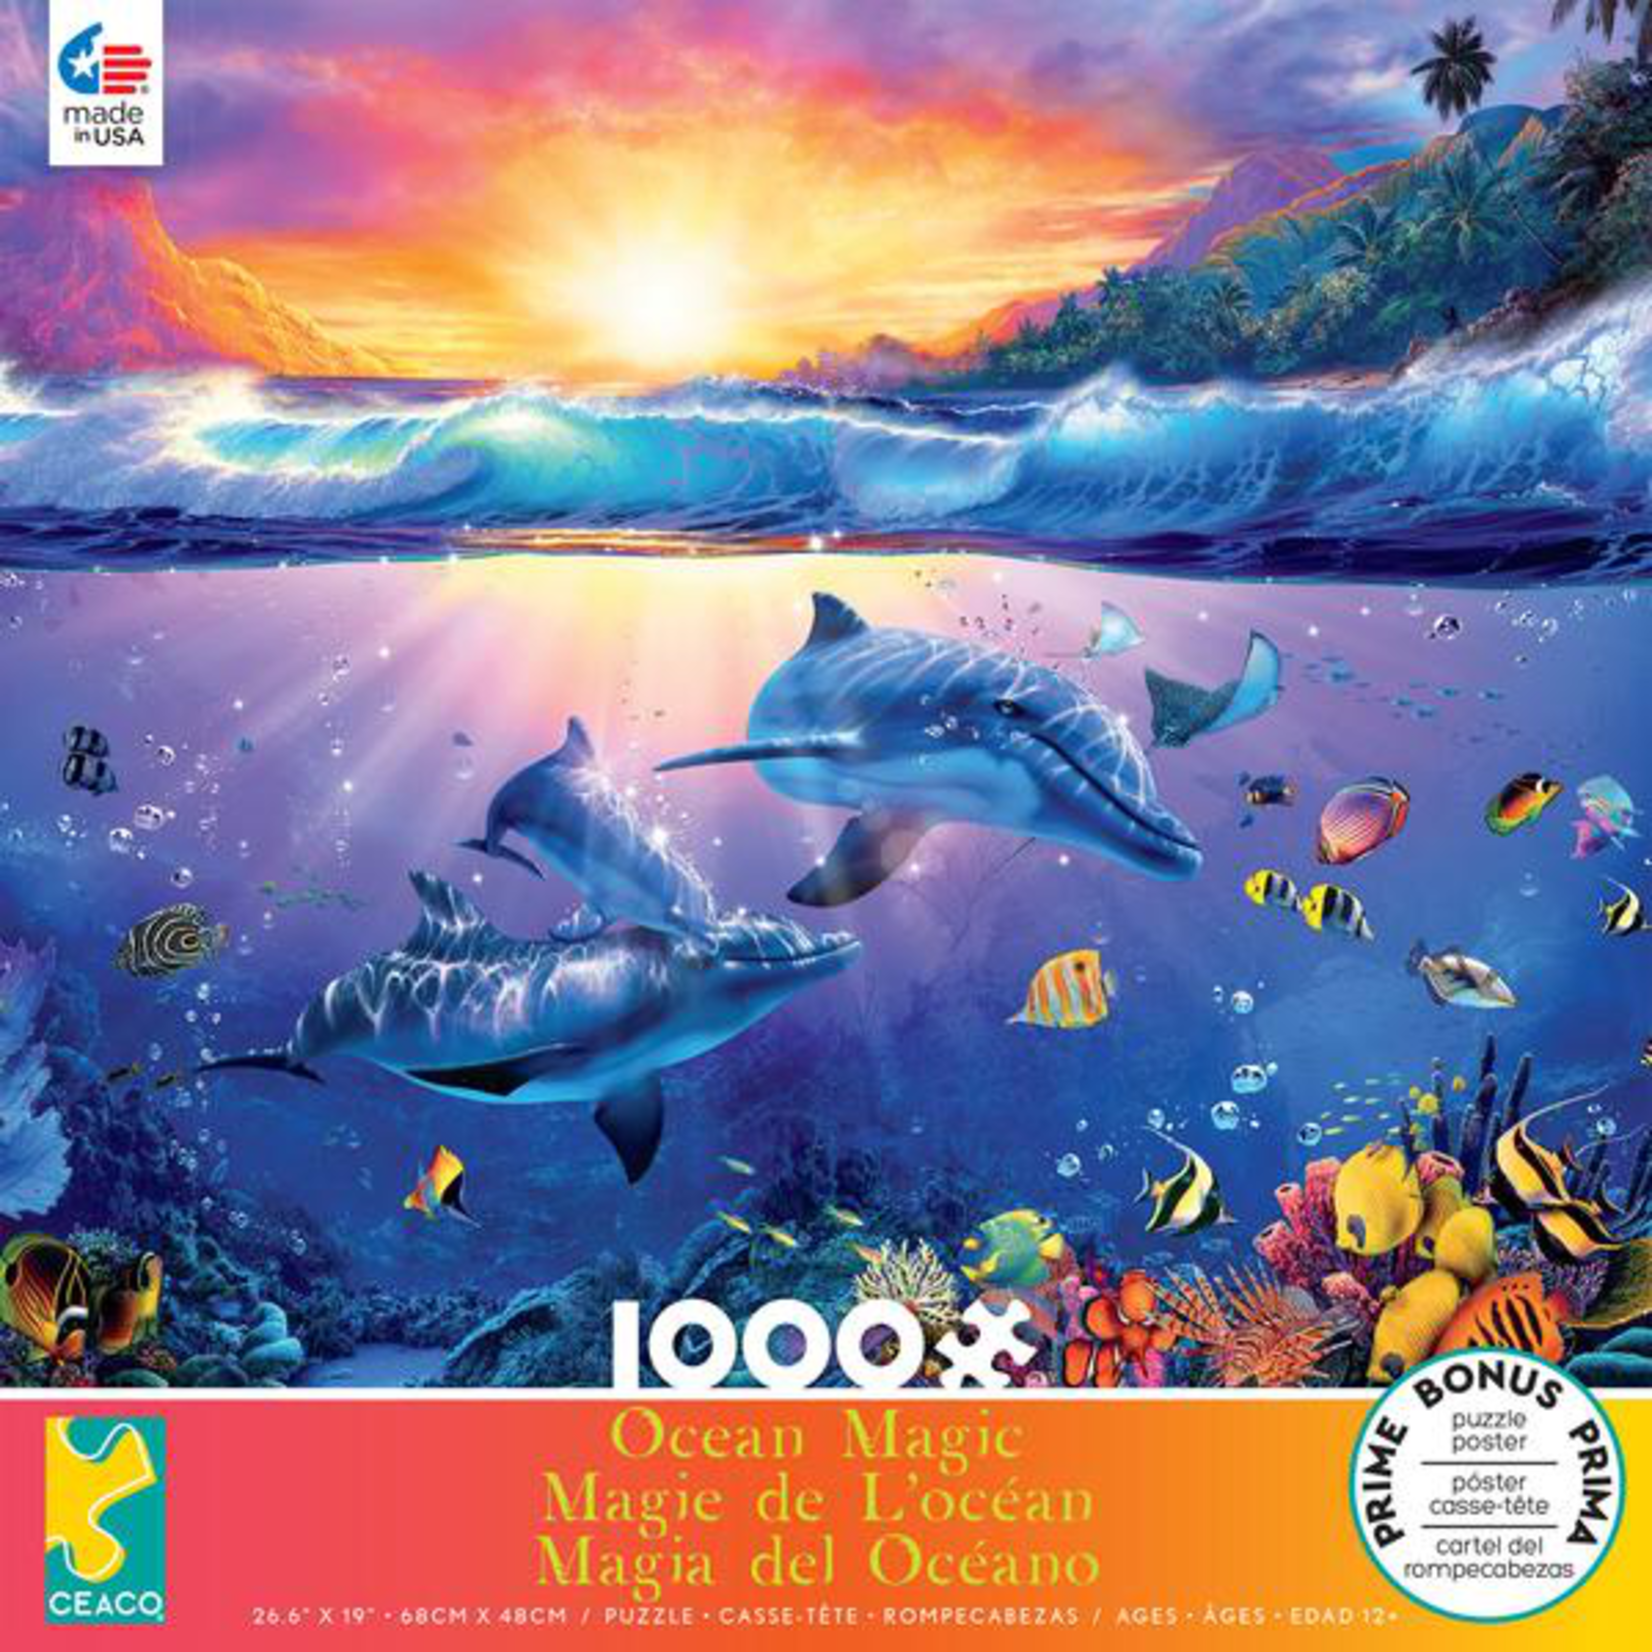 CEACO Twilight OM 1000pc